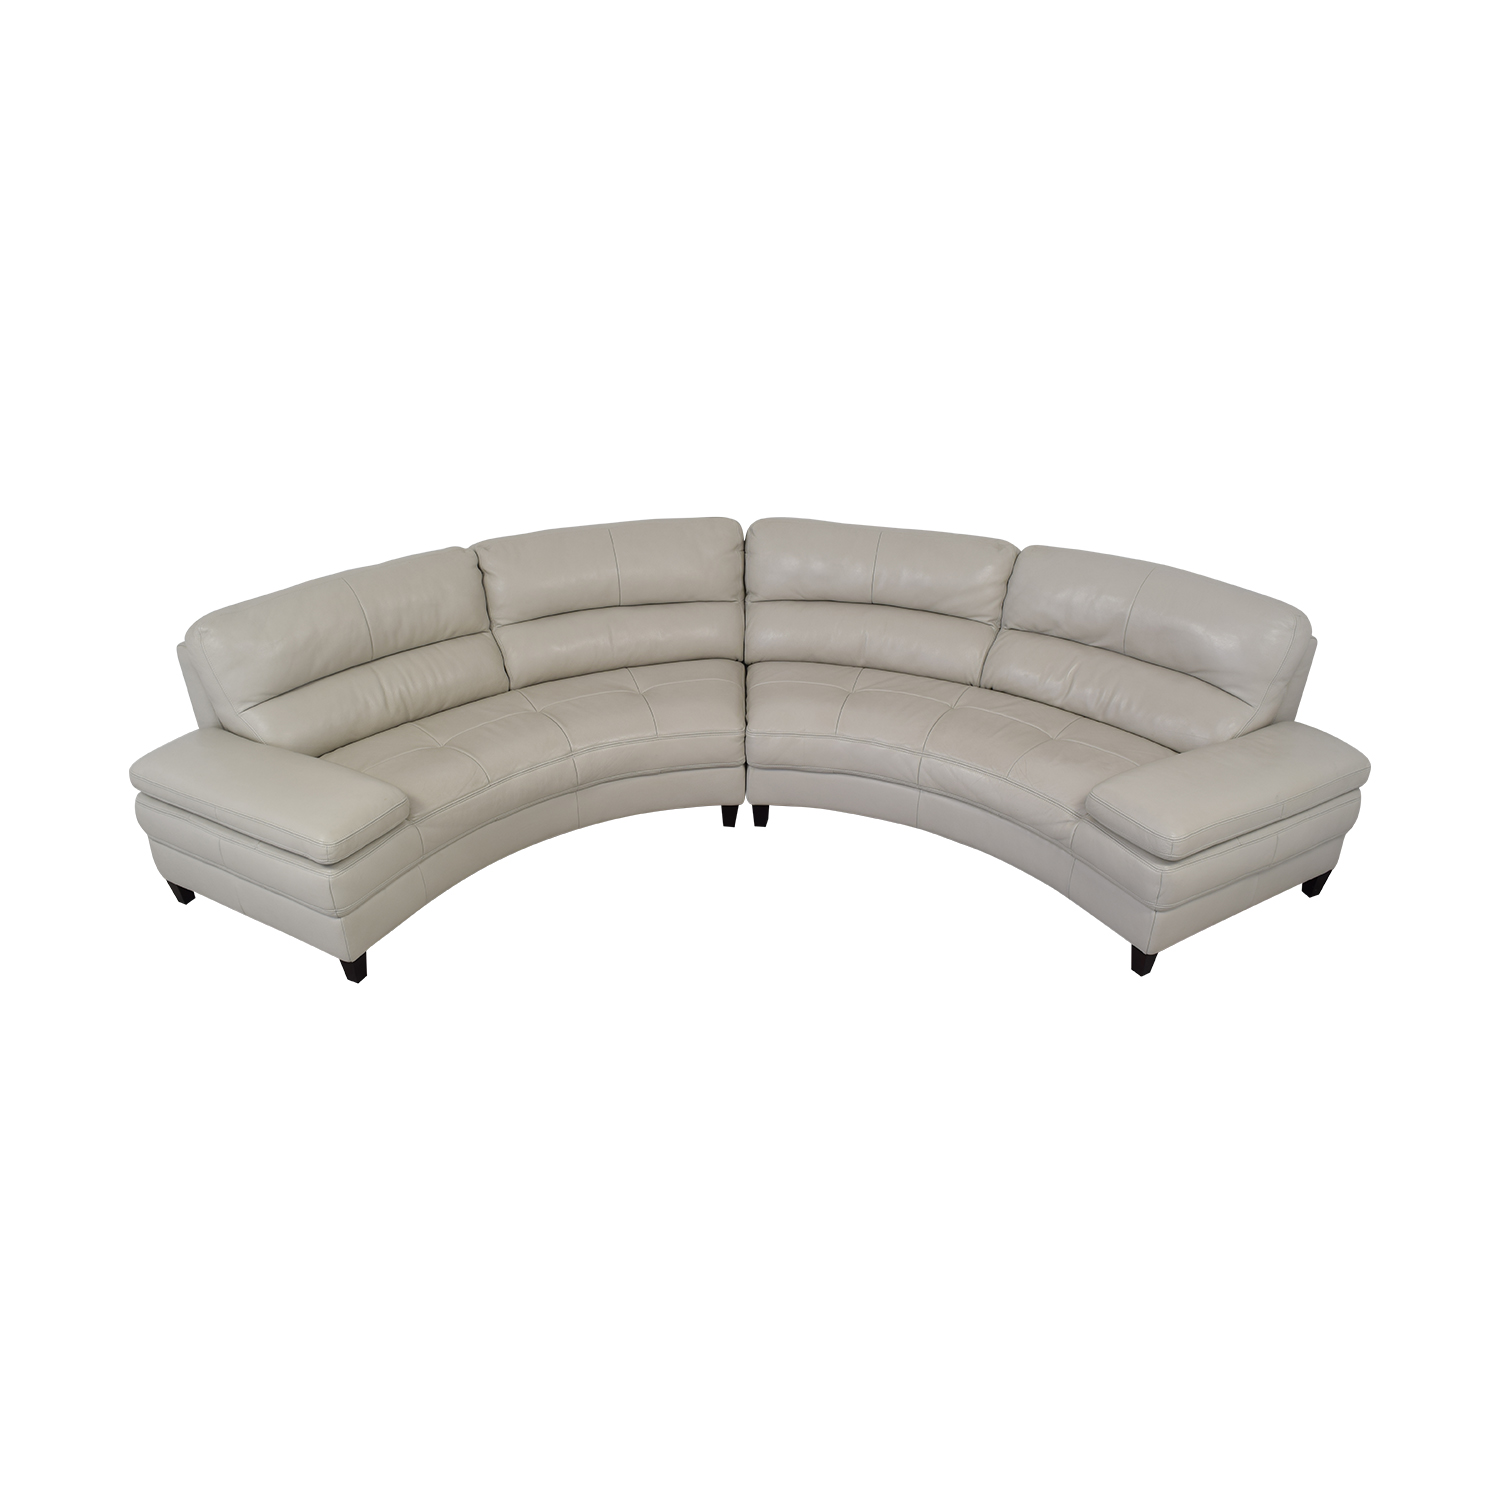 Macy's Leather Curved Sofa / Sofas